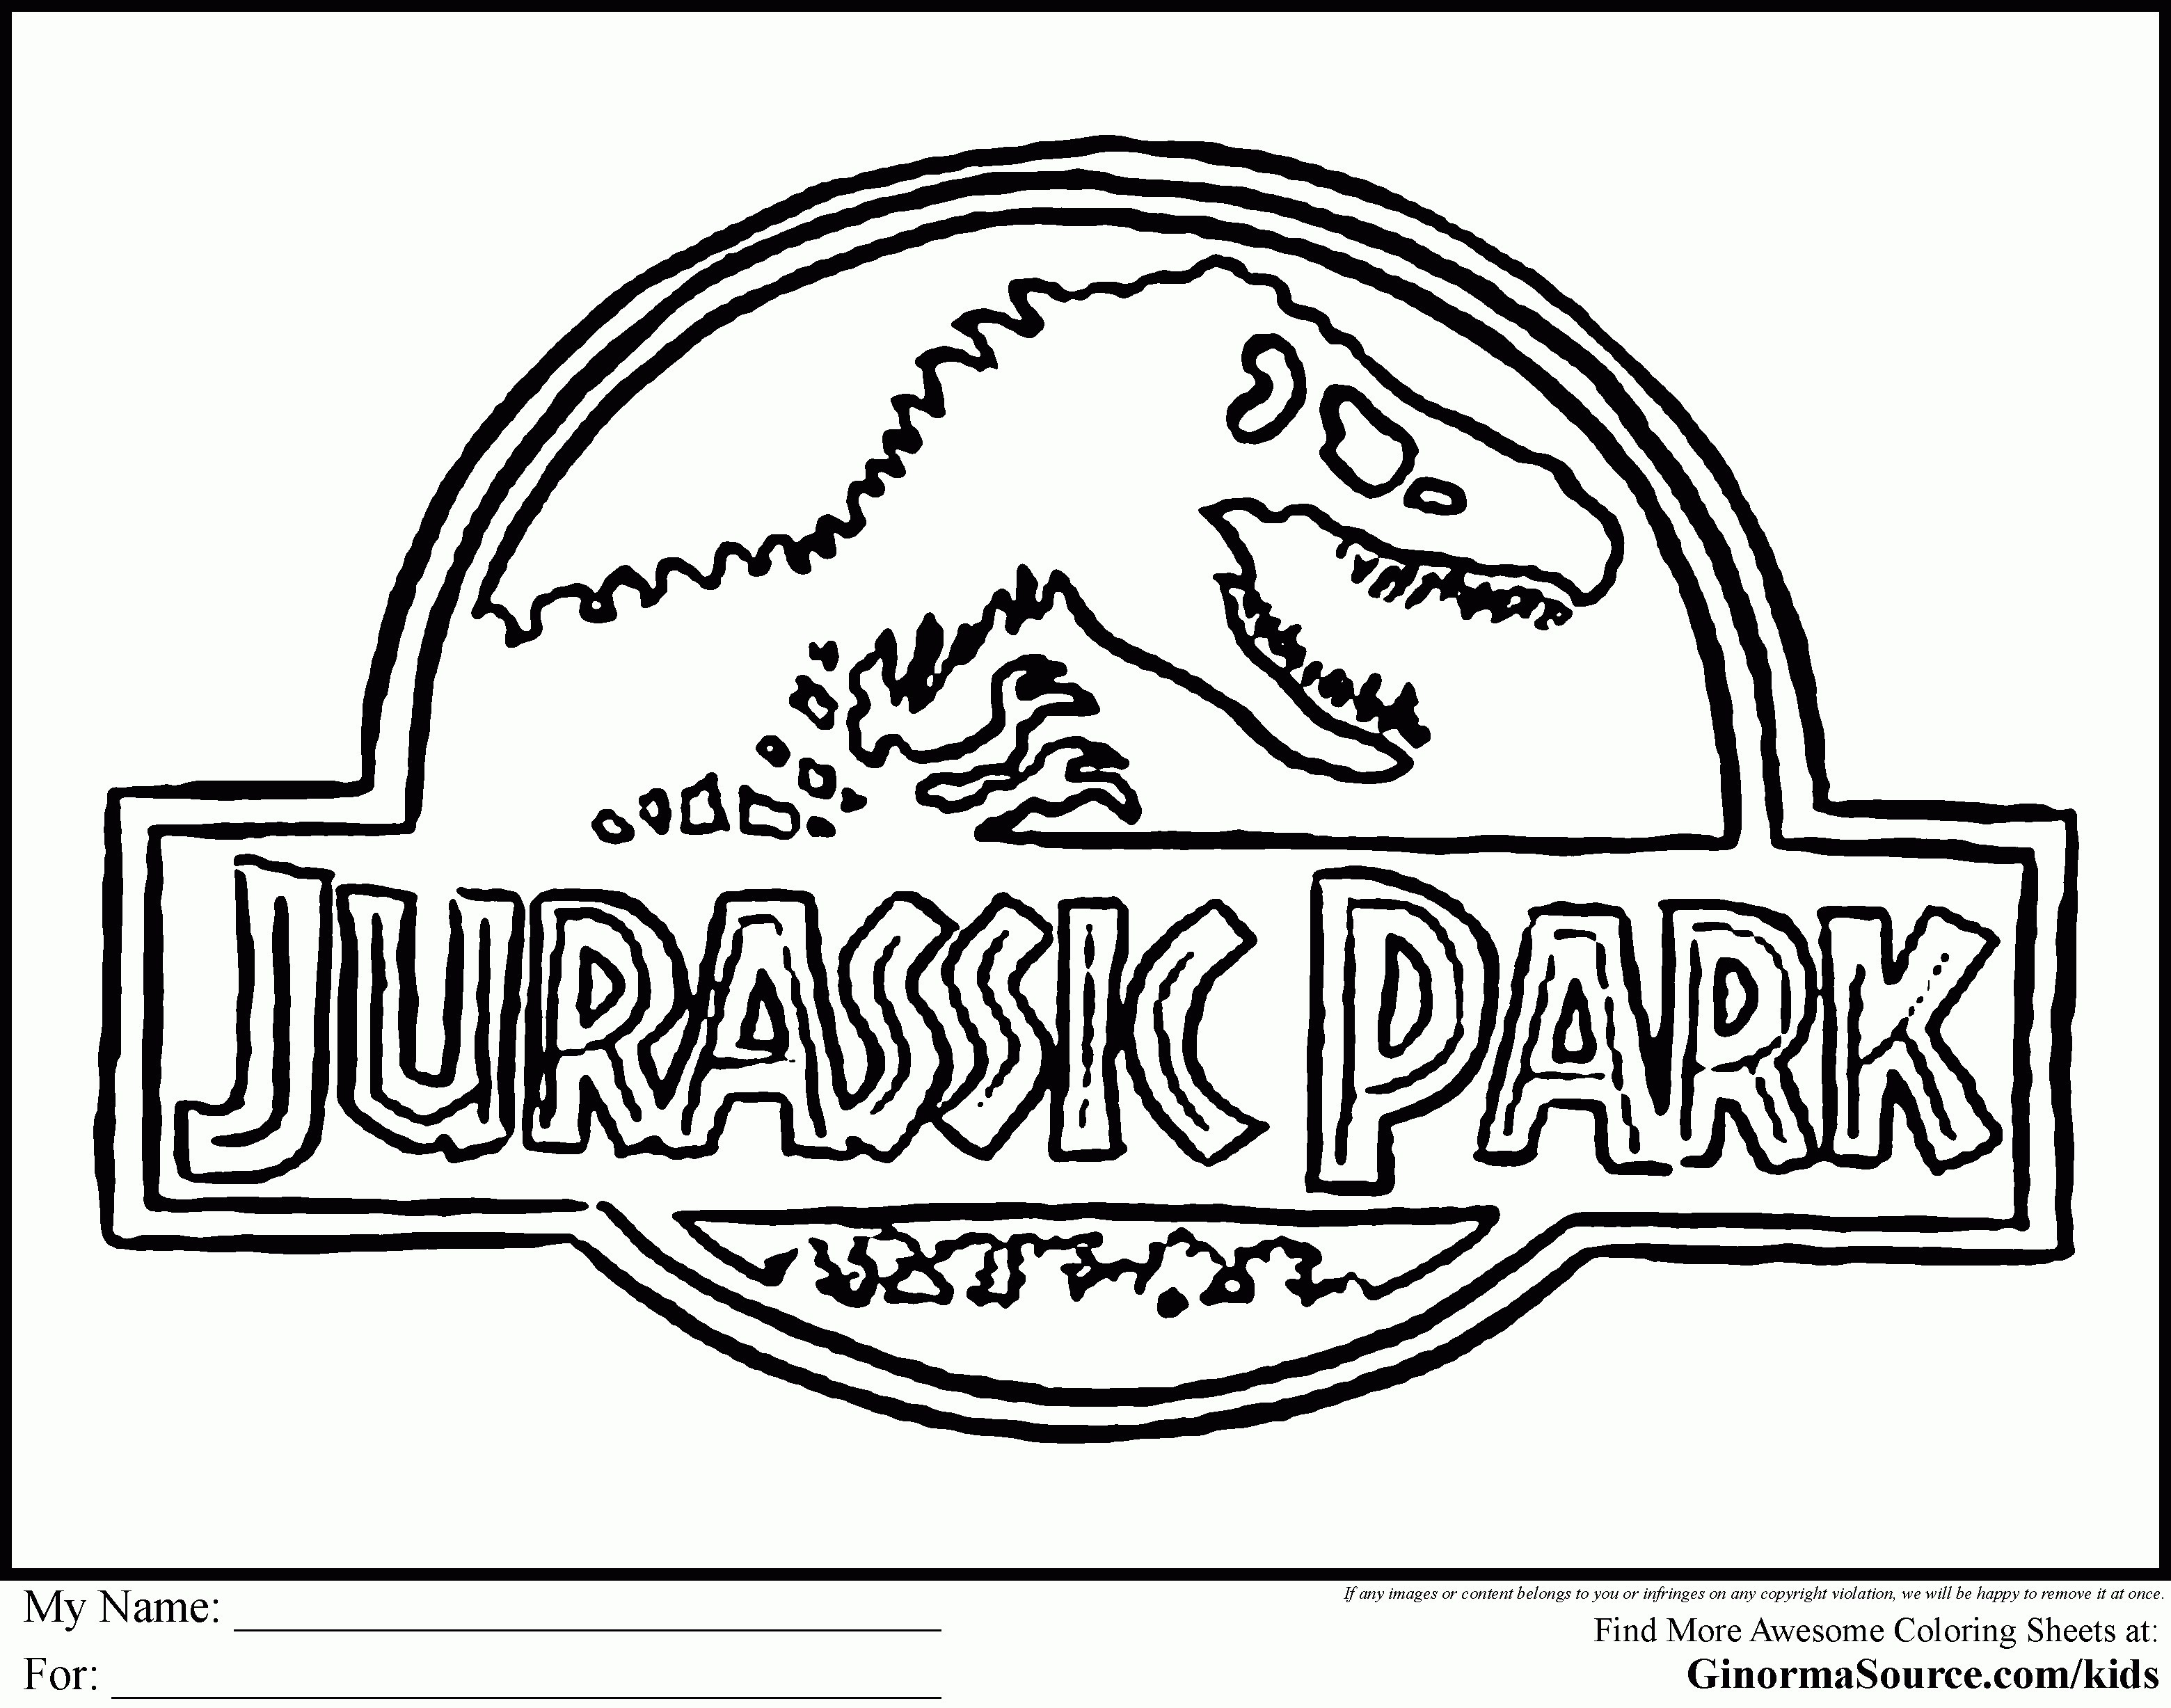 Jurassic World Coloring Pages  to Print 8d - Free Download